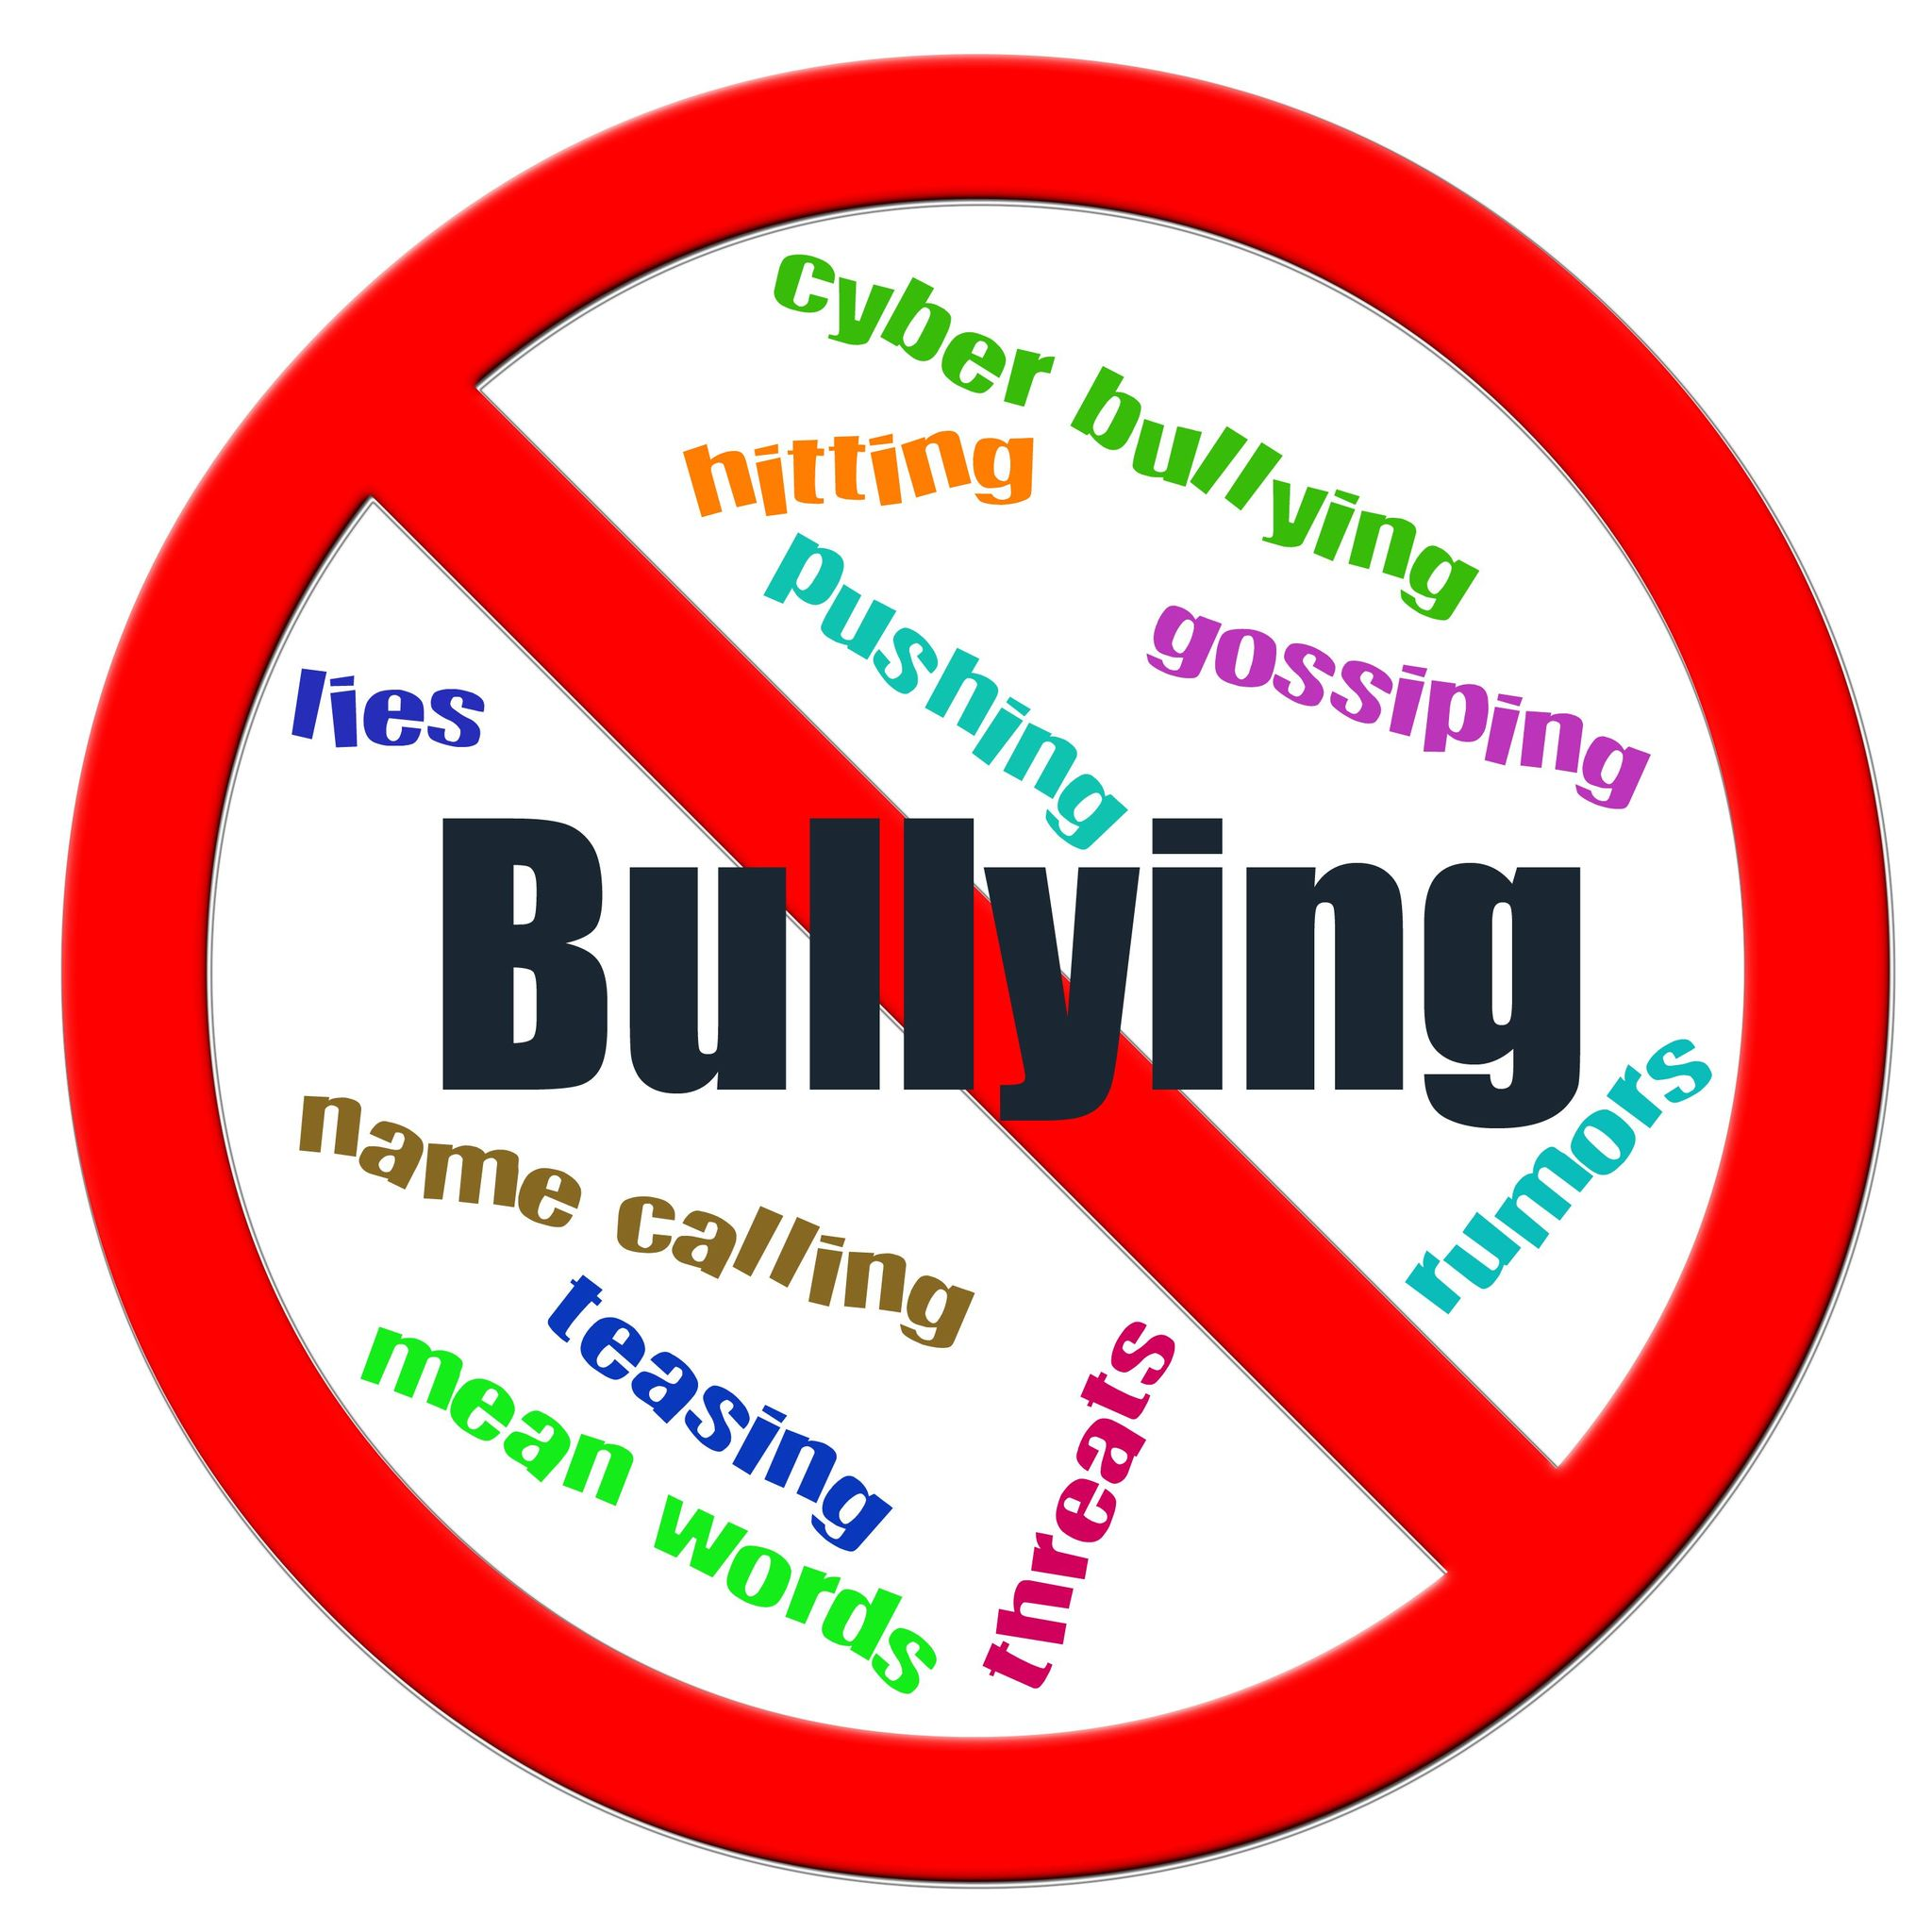 stop bully logo 7 Tips to Stop Bullying